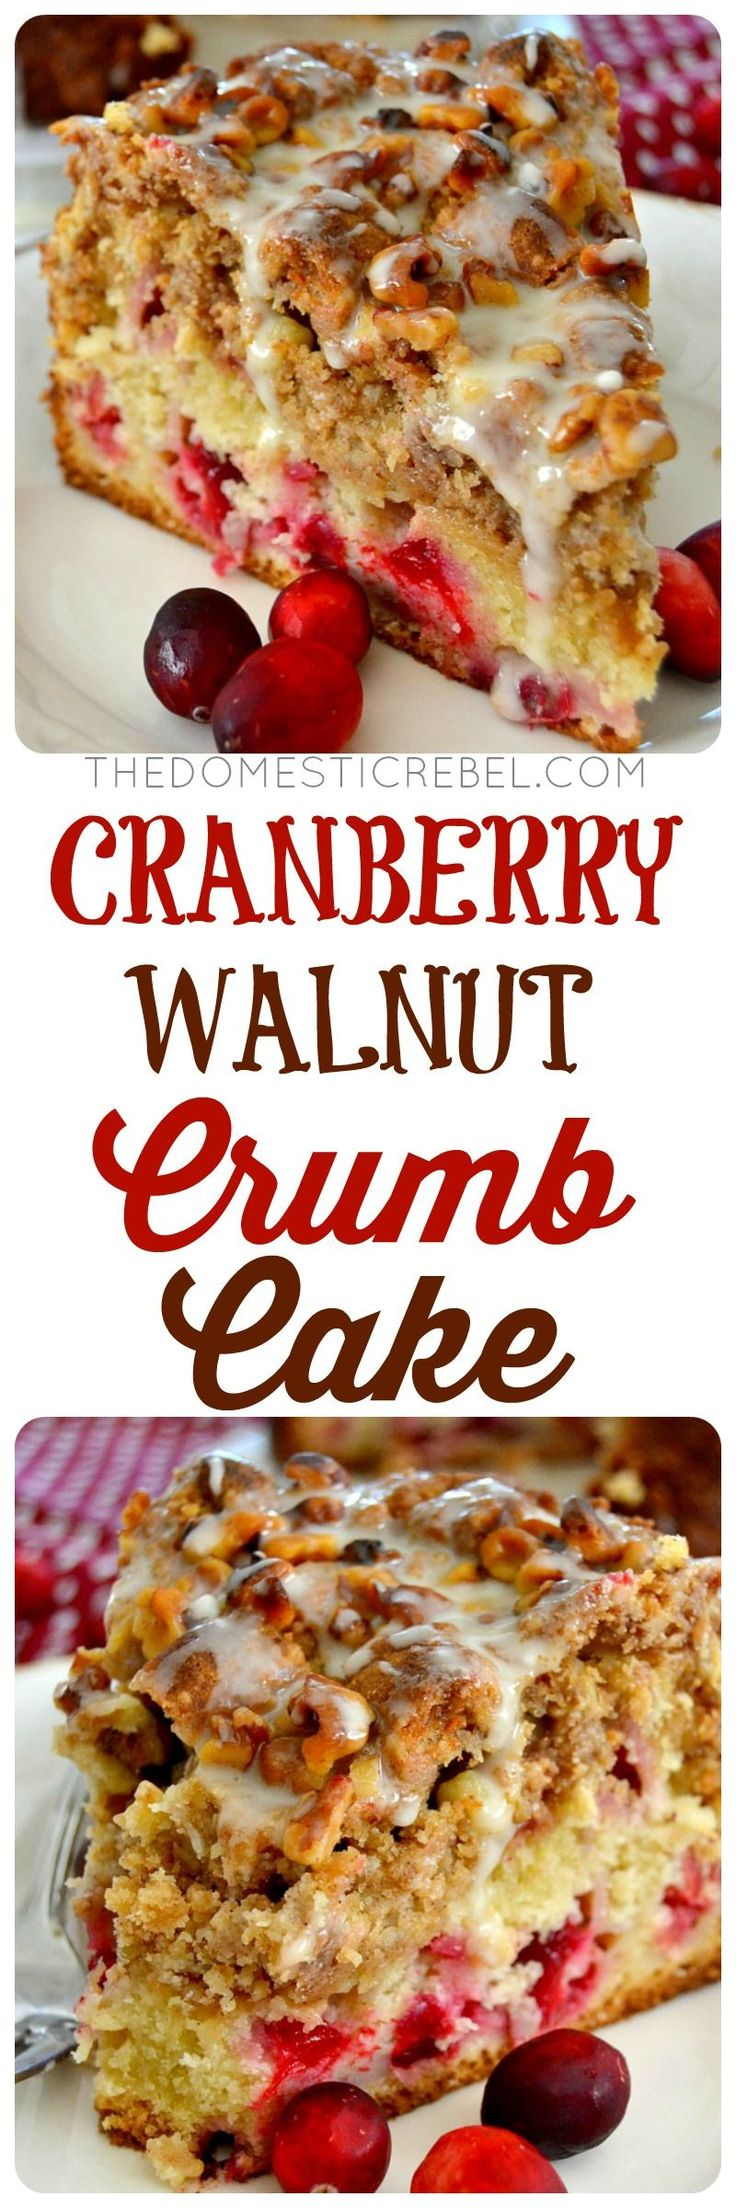 Cranberry Walnut Crumb Cake | The Domestic Rebel | a buttery, moist cake filled with bright and juicy cranberries, then topped with a crunchy, melt-in-your-mouth brown sugar, cinnamon & walnut streusel crumb. So impressive, so easy!